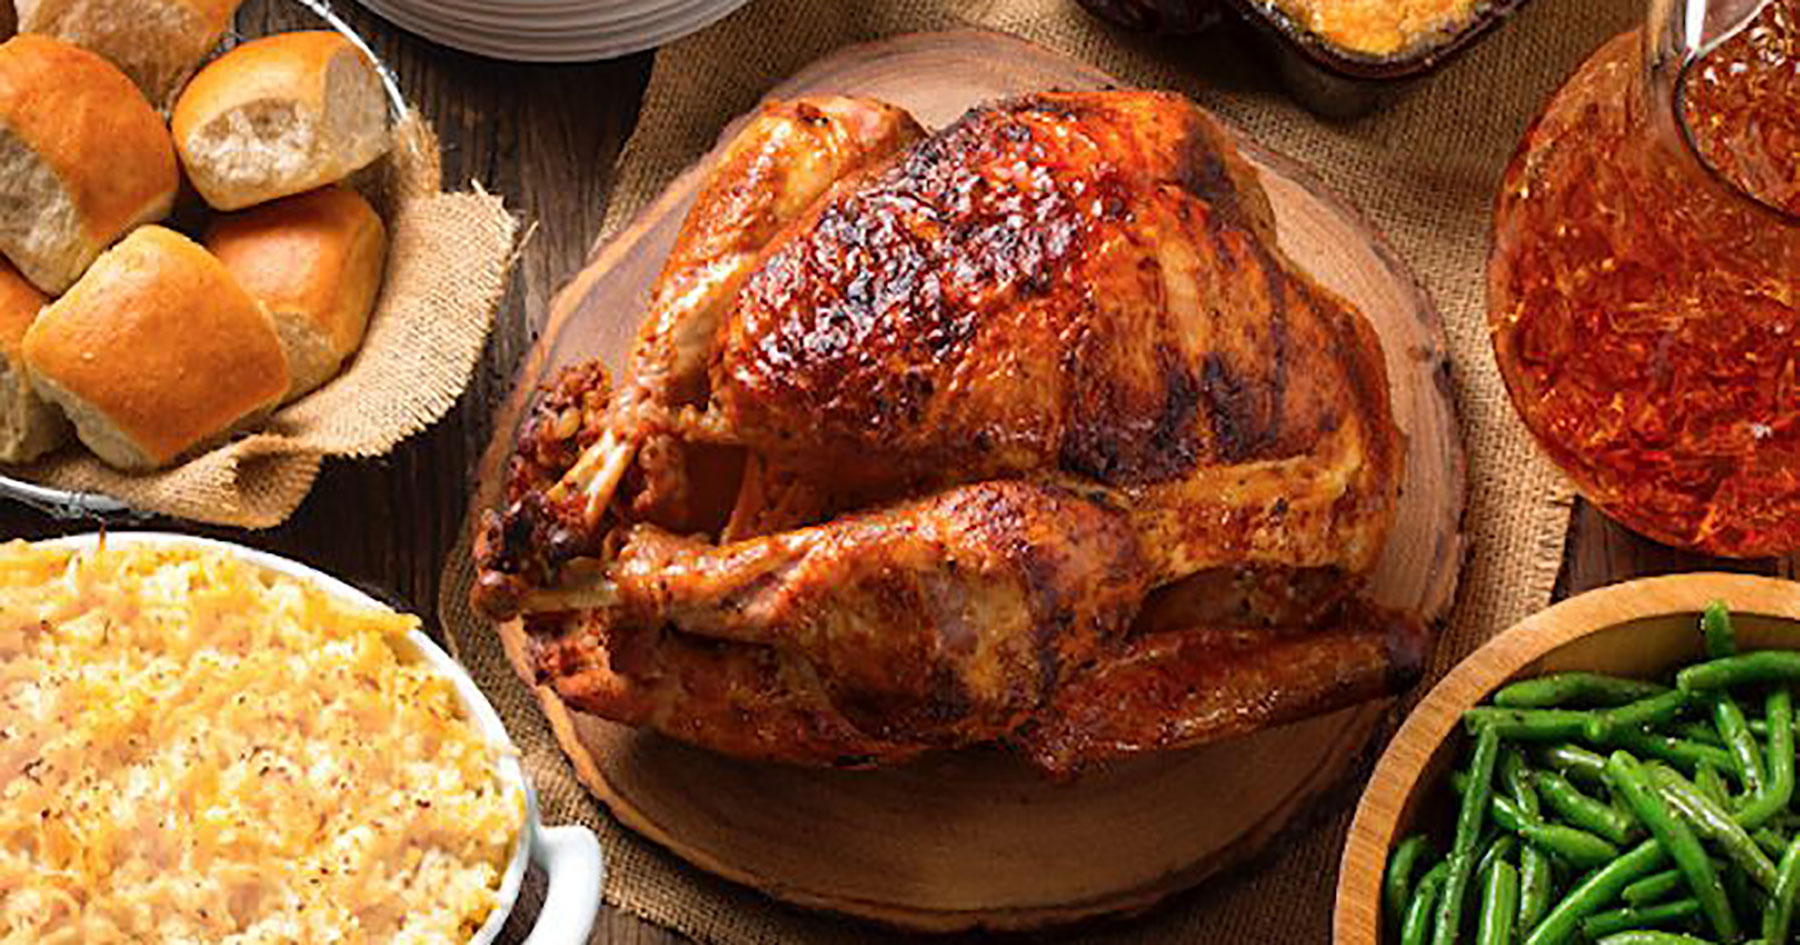 Cowboy Chicken Brings Back Turkey Holiday Package